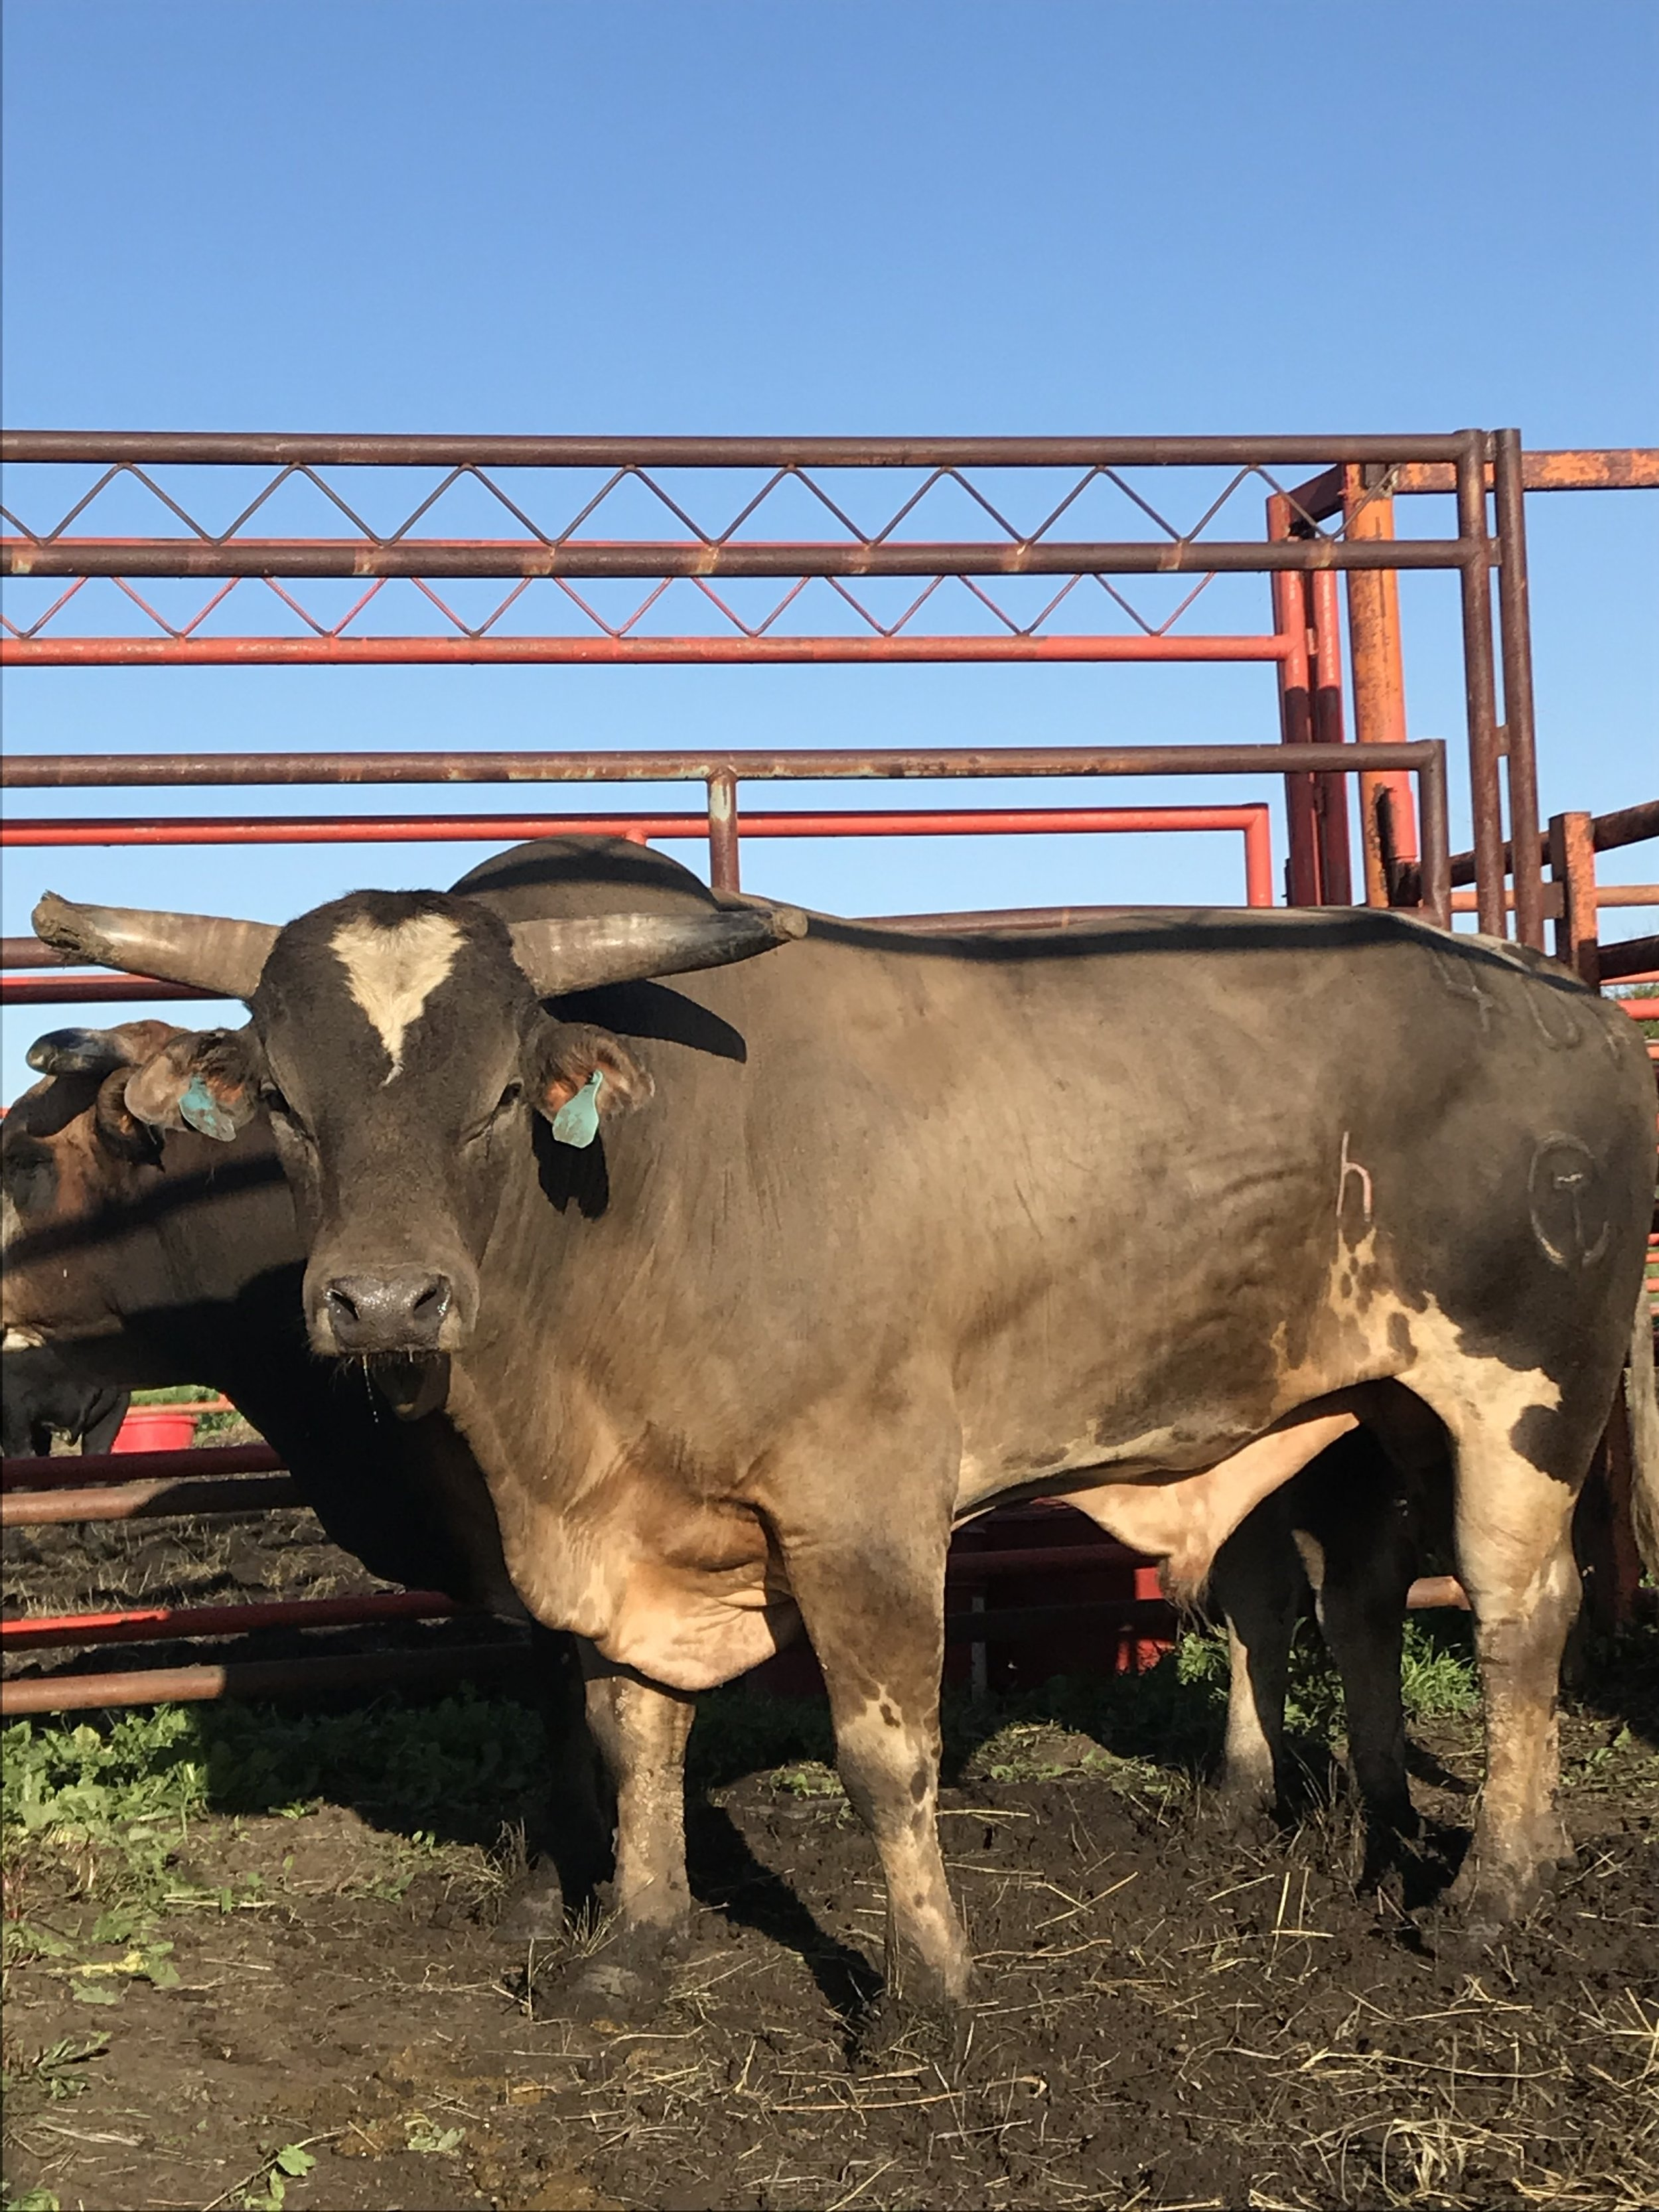 Five year old 401 Party Rock, sired by Jack Daniel's After Party has been selected by Hedeman as the Bounty Bull for the Red Wilk Construction Bull Bash at the South Dakota State Fair